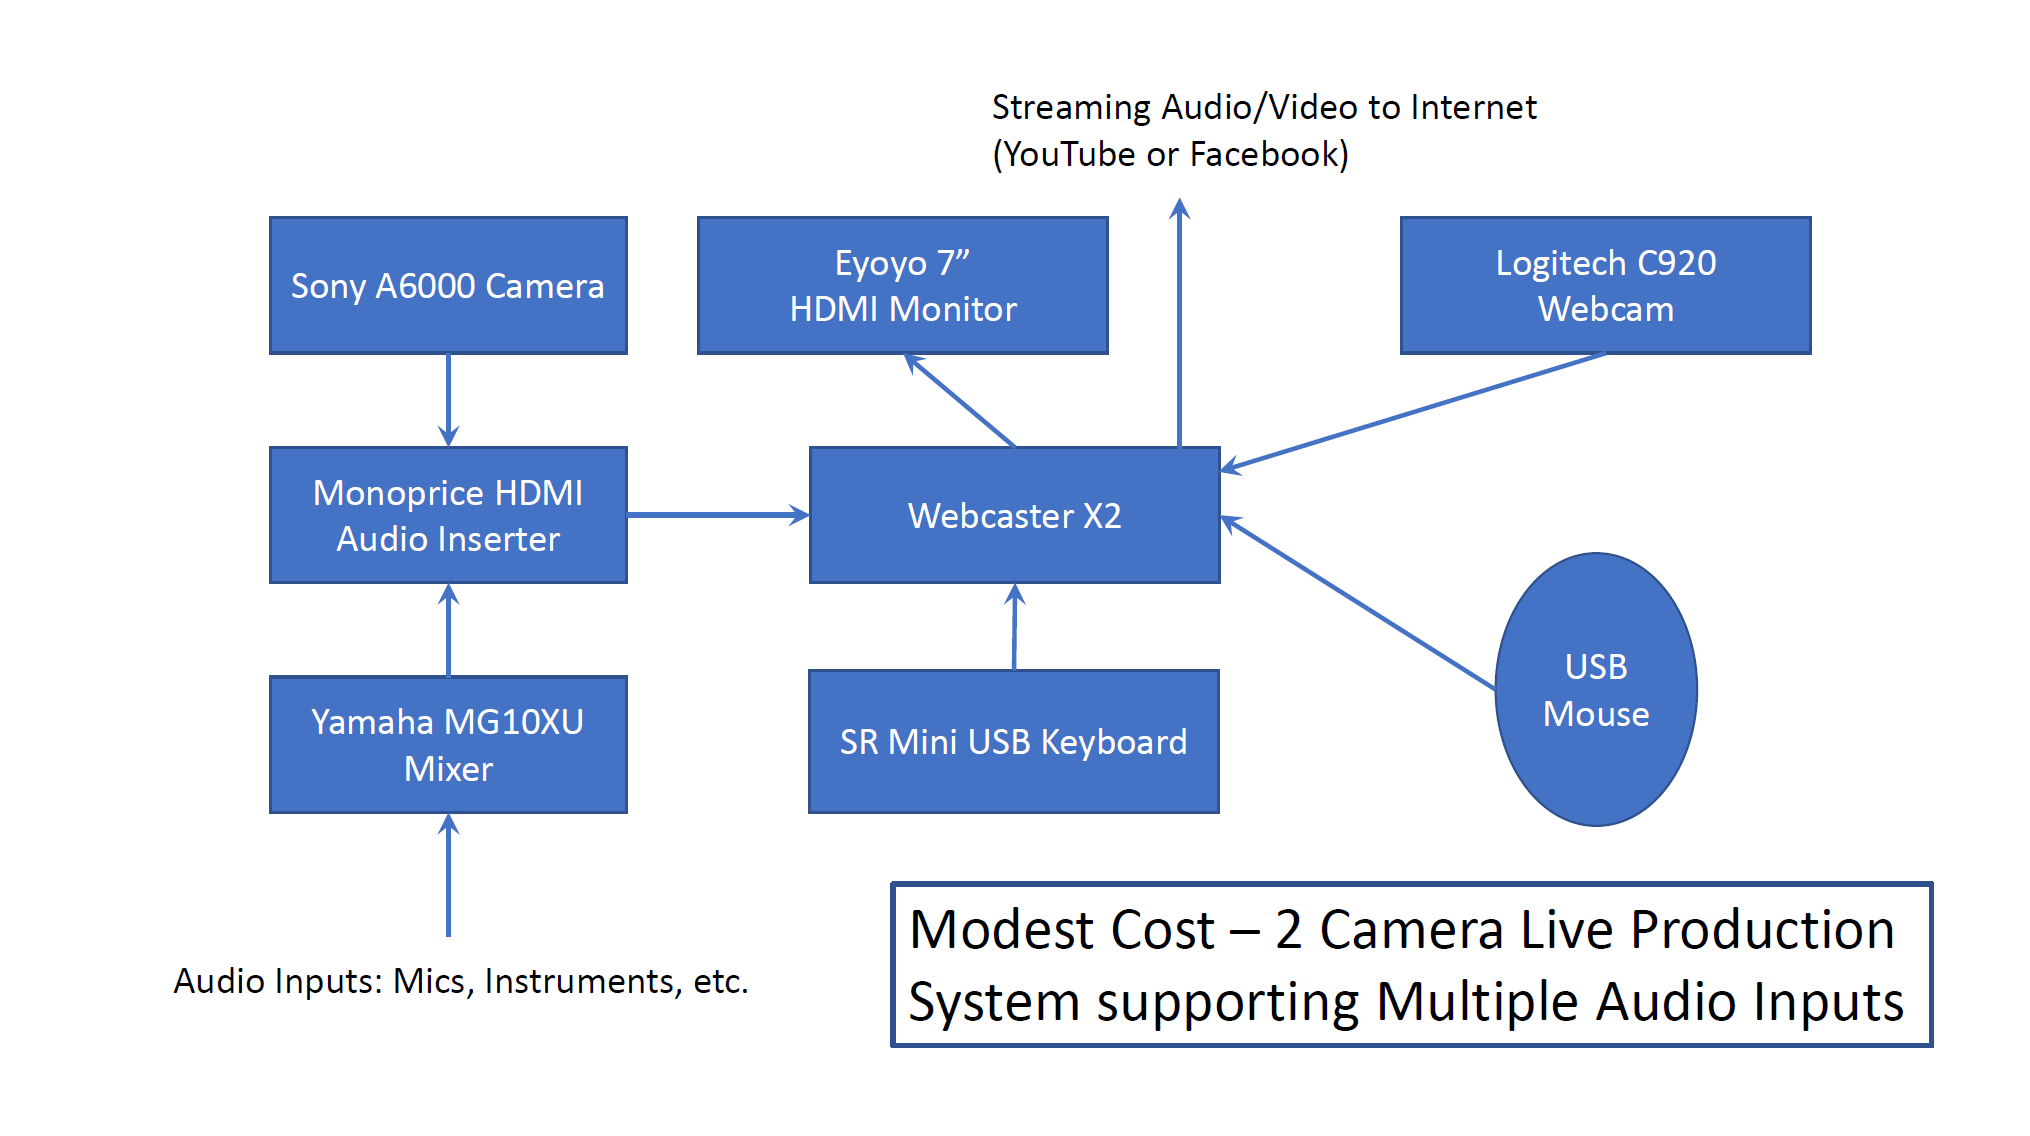 Low Cost Live Production System via Webcaster - General